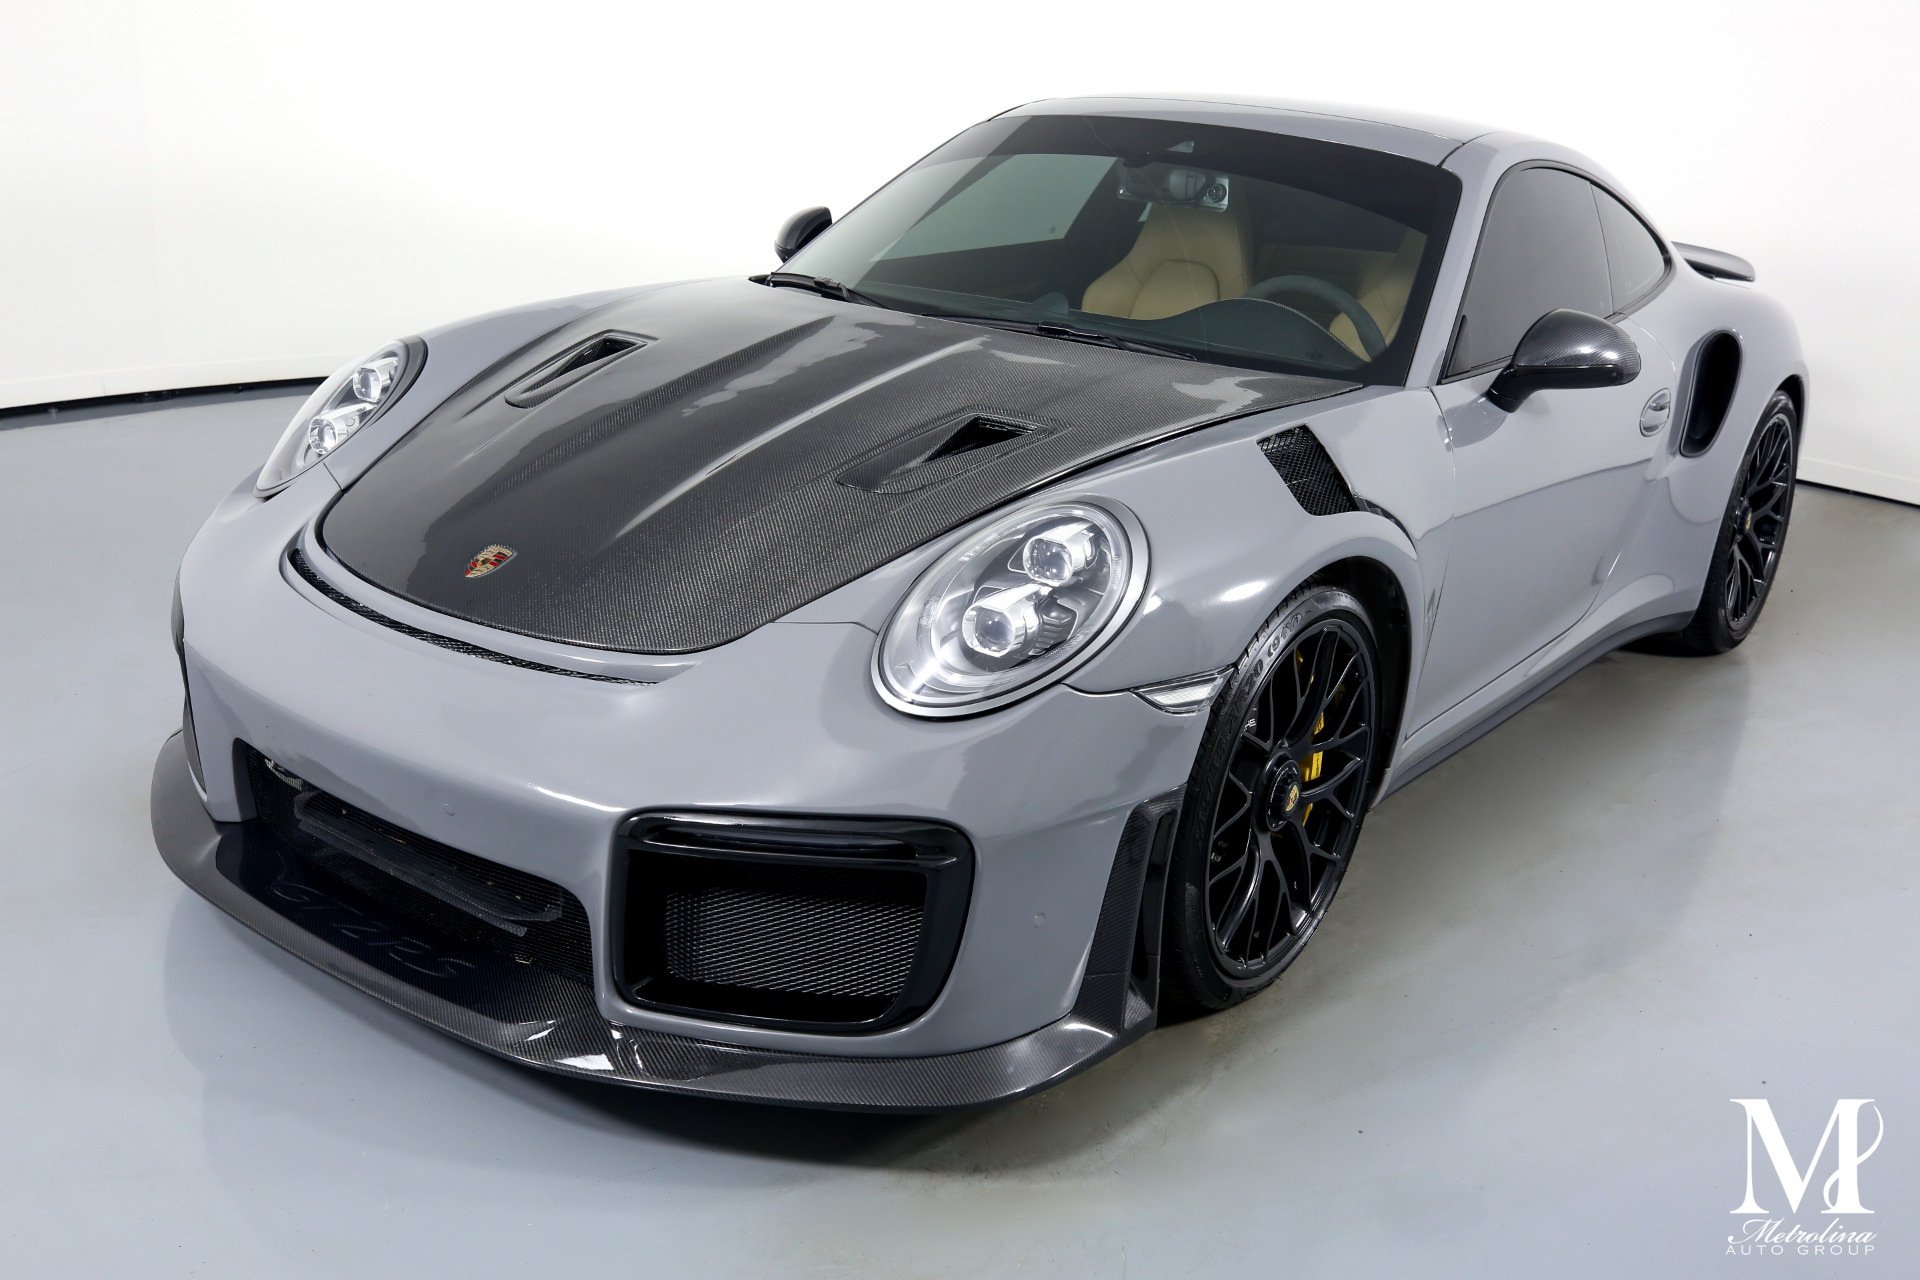 Used 2014 Porsche 911 Turbo S for sale Call for price at Metrolina Auto Group in Charlotte NC 28217 - 4